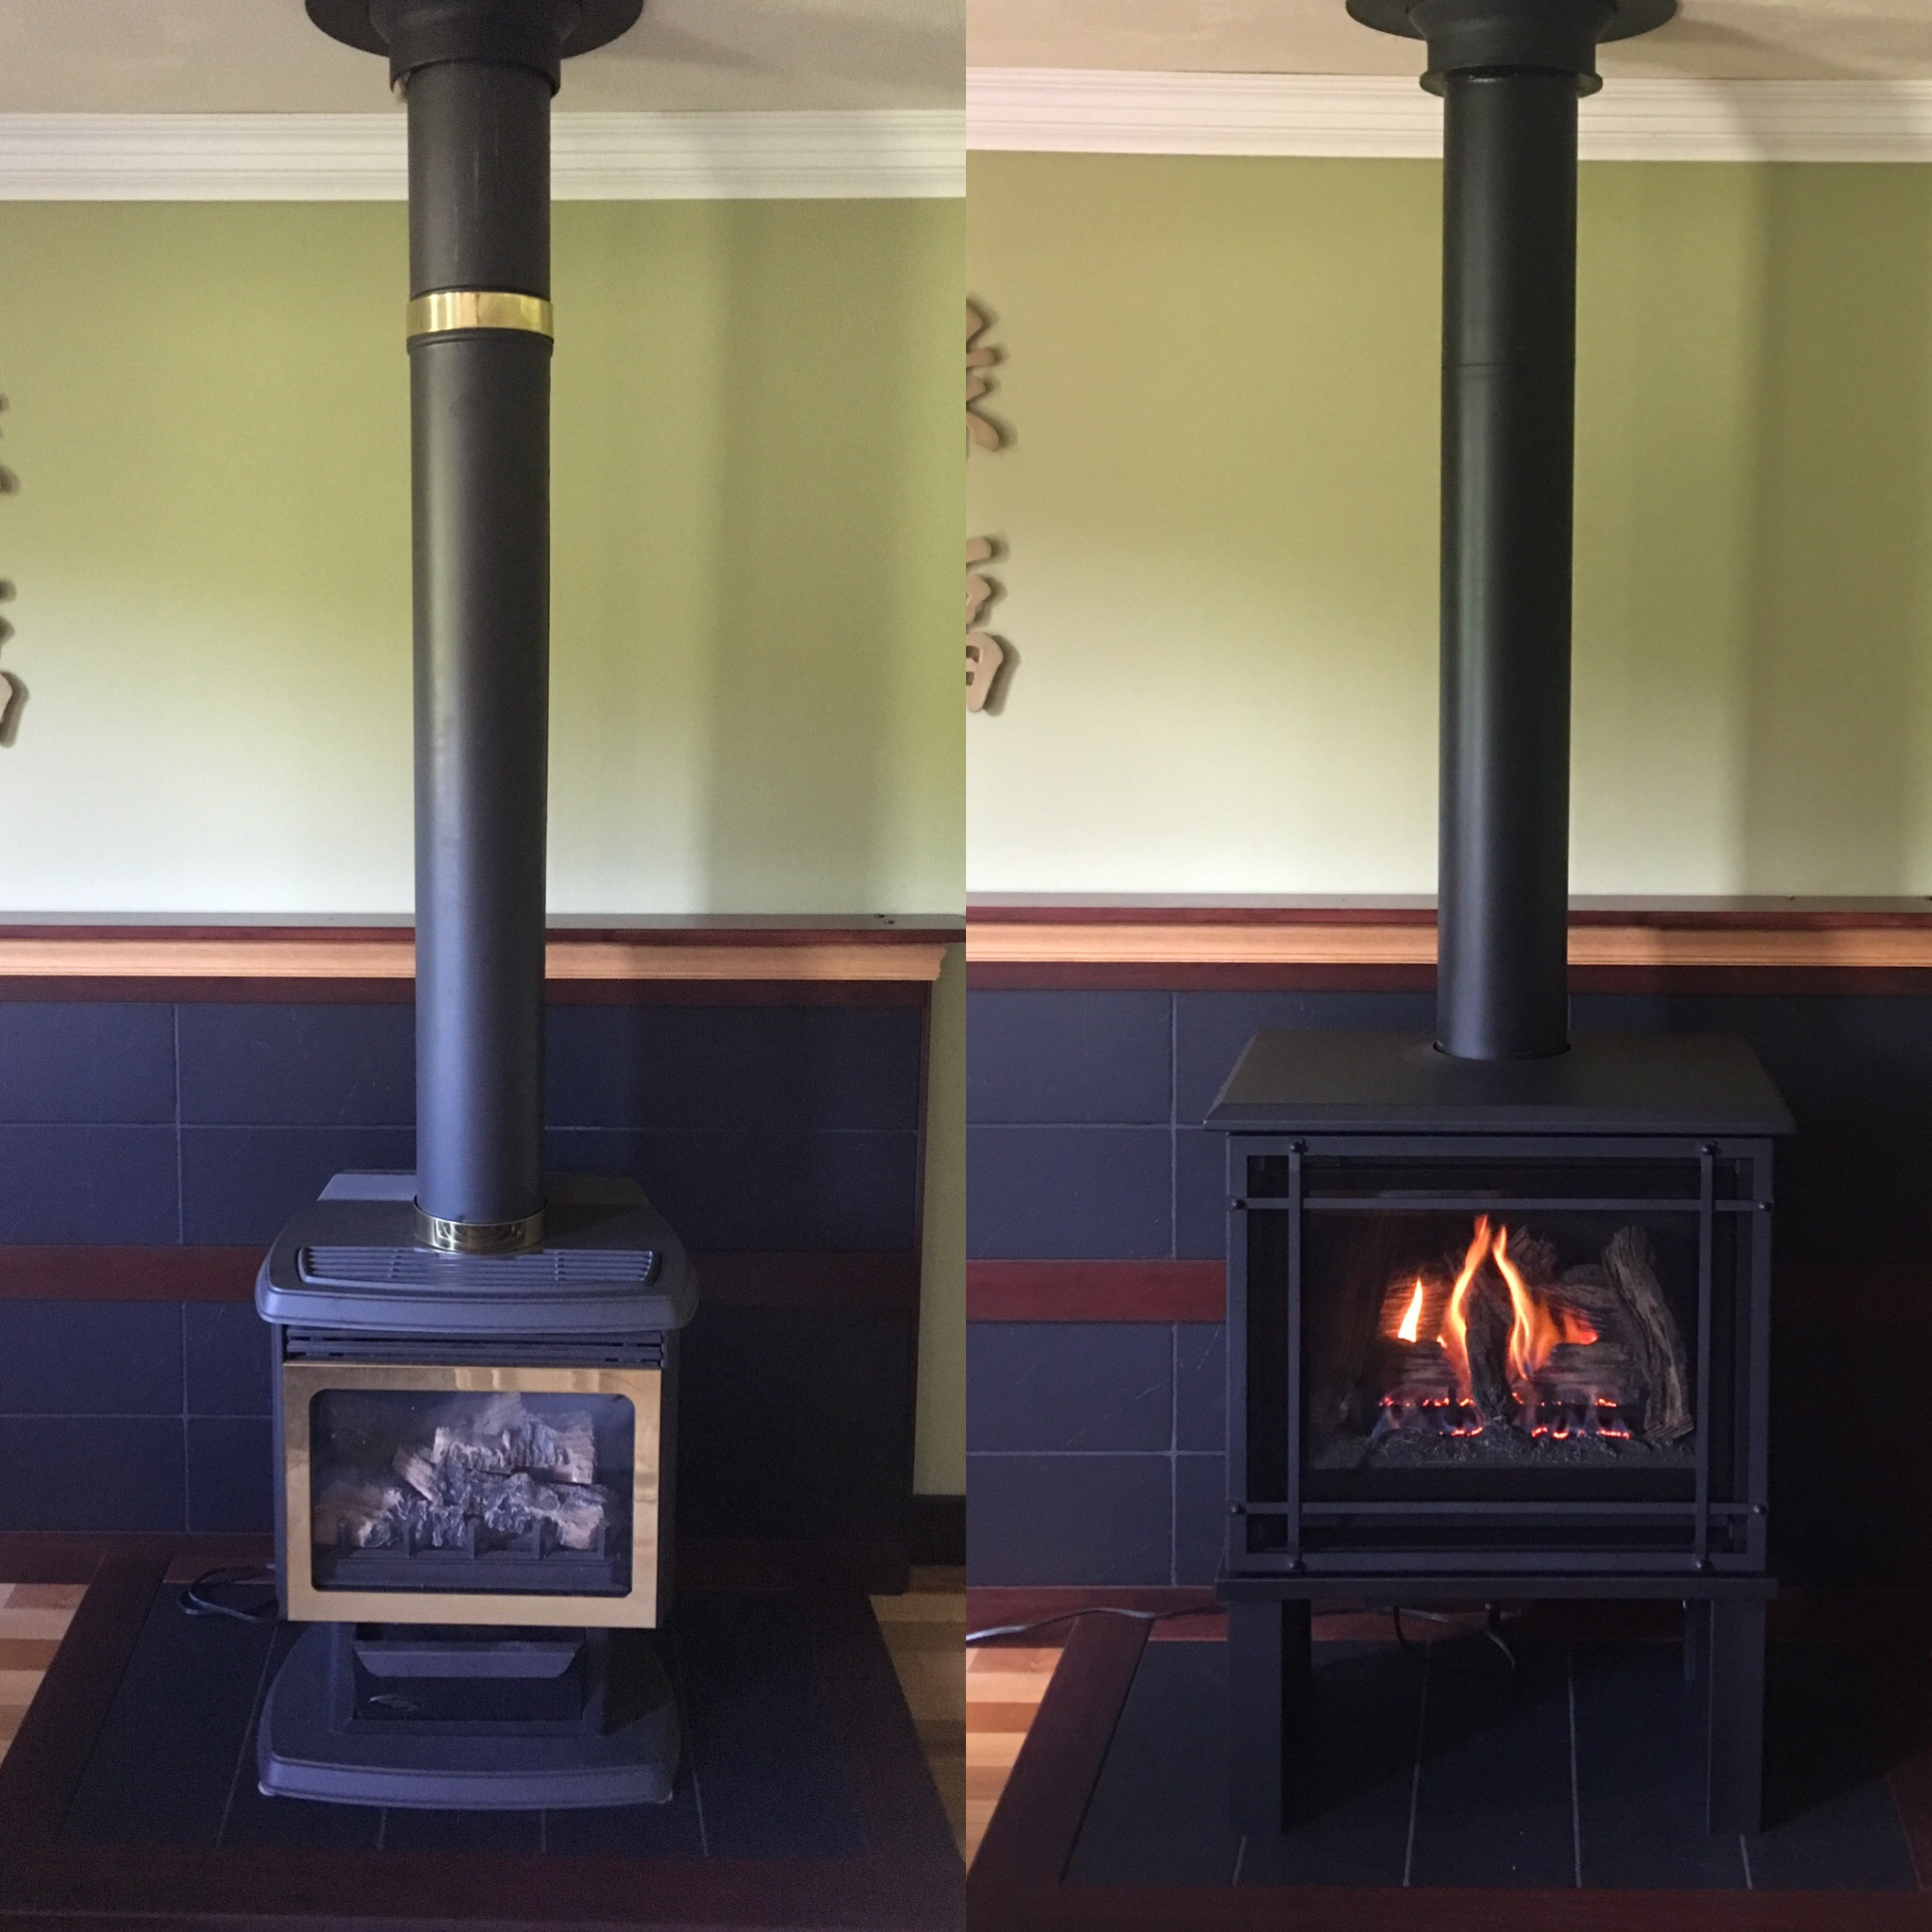 Image of a traditional Birchwood 20 gas stove by Kozy Heat and the preexisting gas stove as the before.